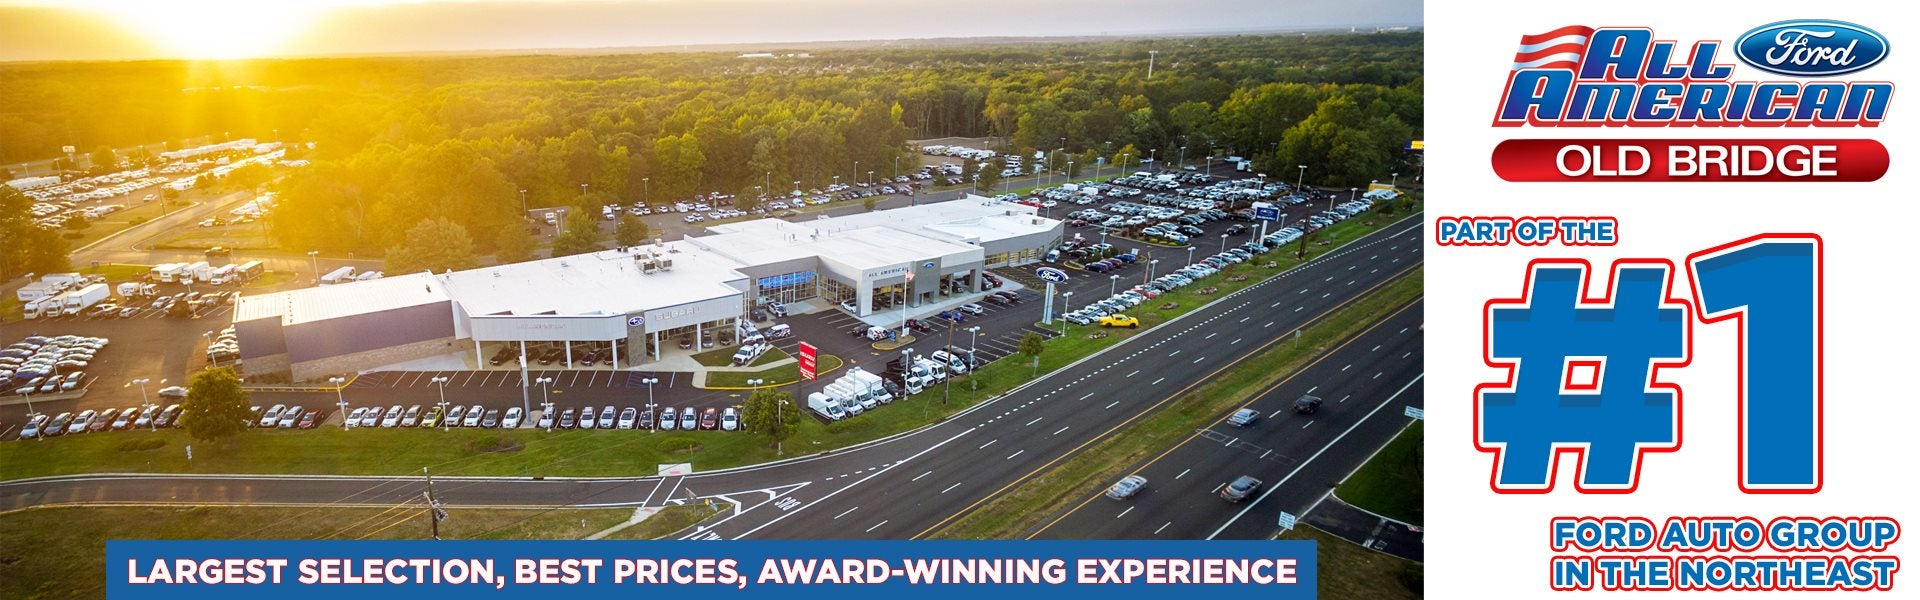 Ford Dealers Nj >> All American Ford In Old Bridge Old Bridge Township Nj